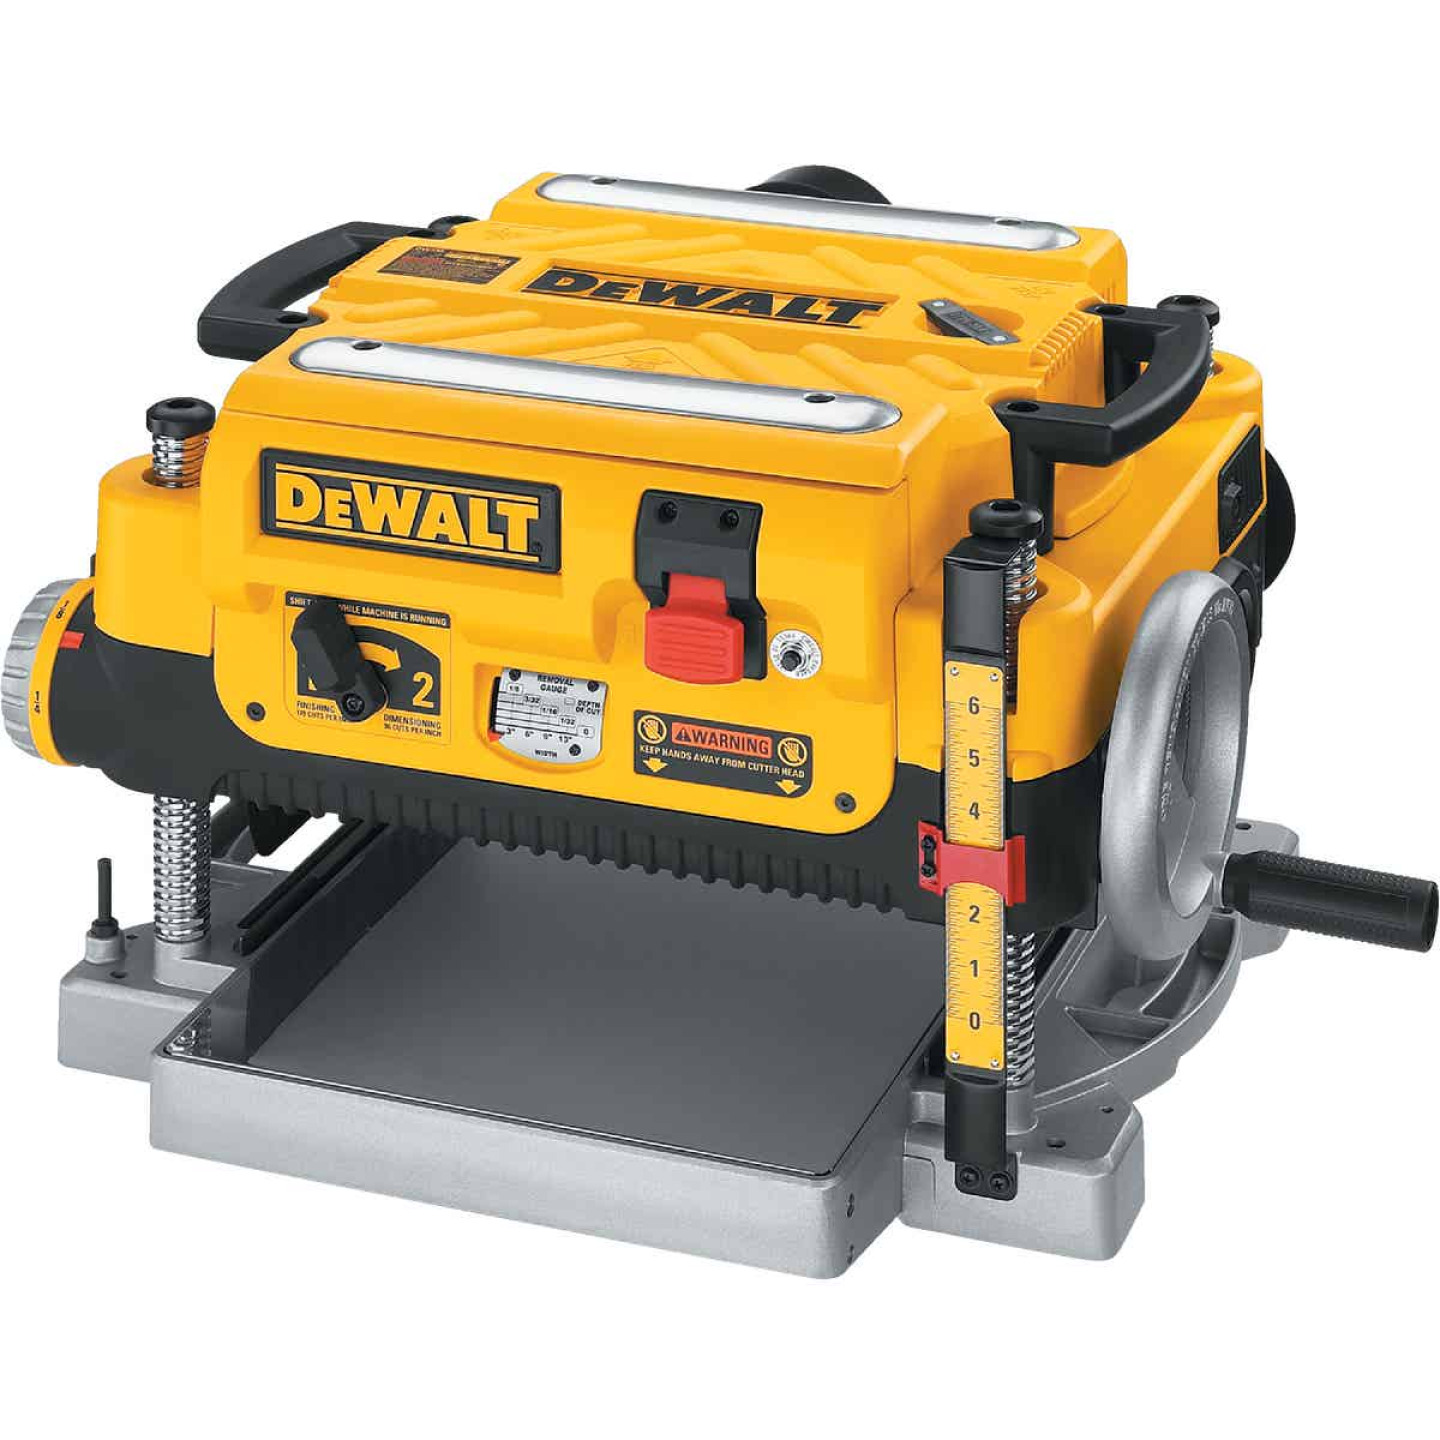 DeWalt 13 In. Three Knife Two-Speed Portable Planer Image 9